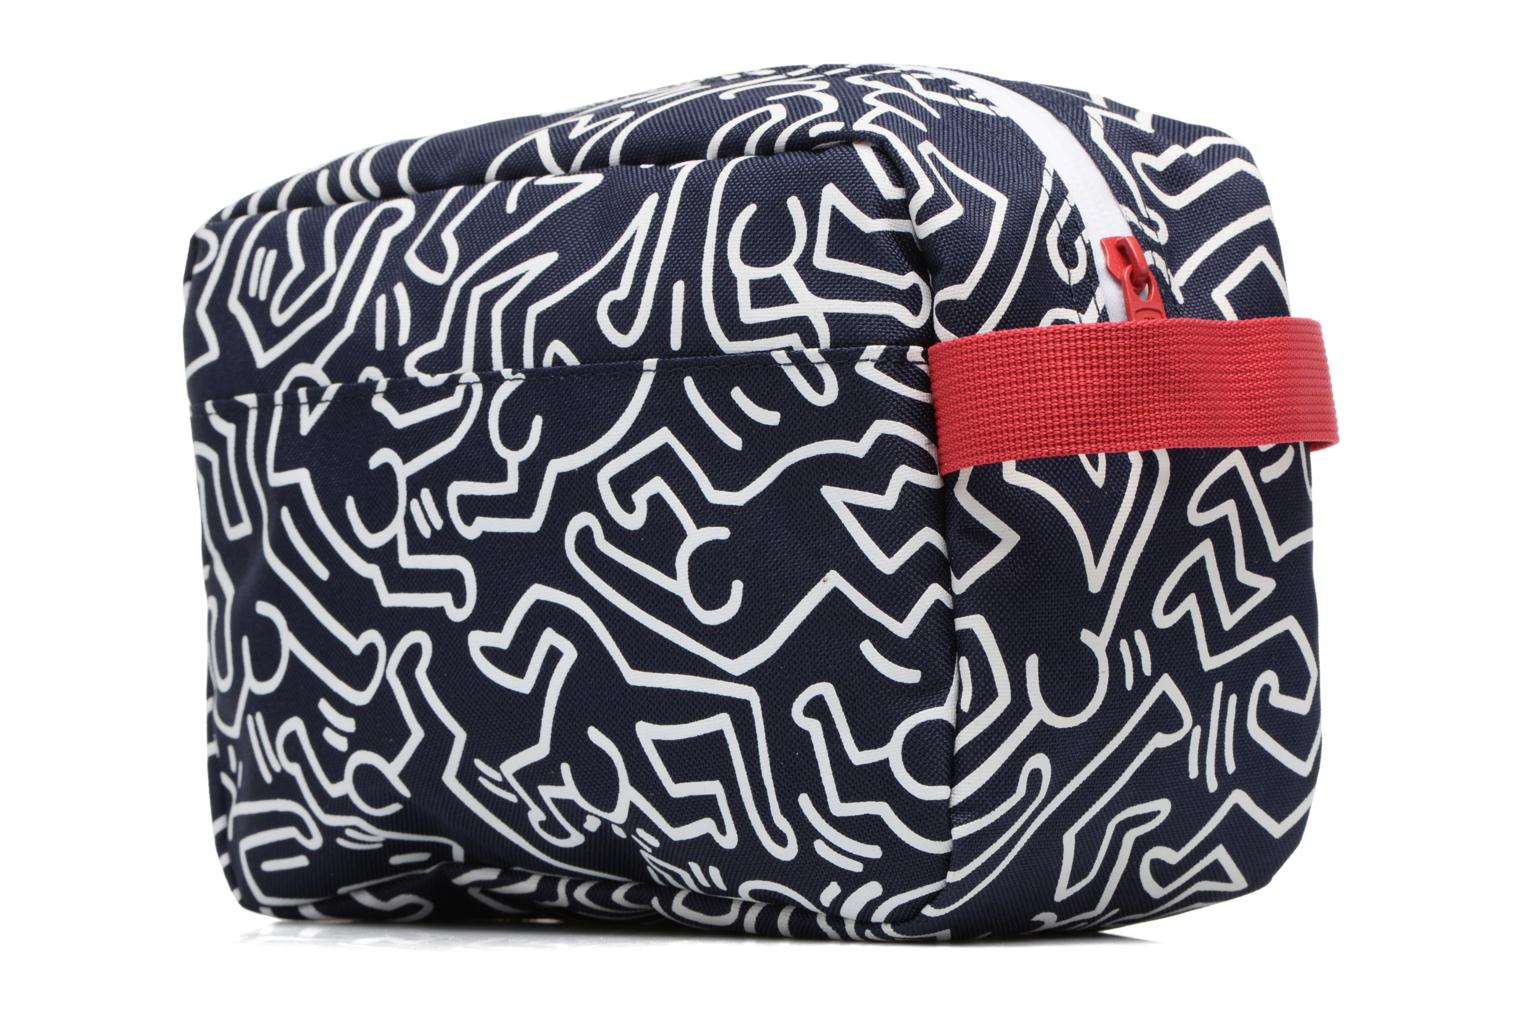 Bagages Herschel Chapter Keith Haring Bleu vue droite